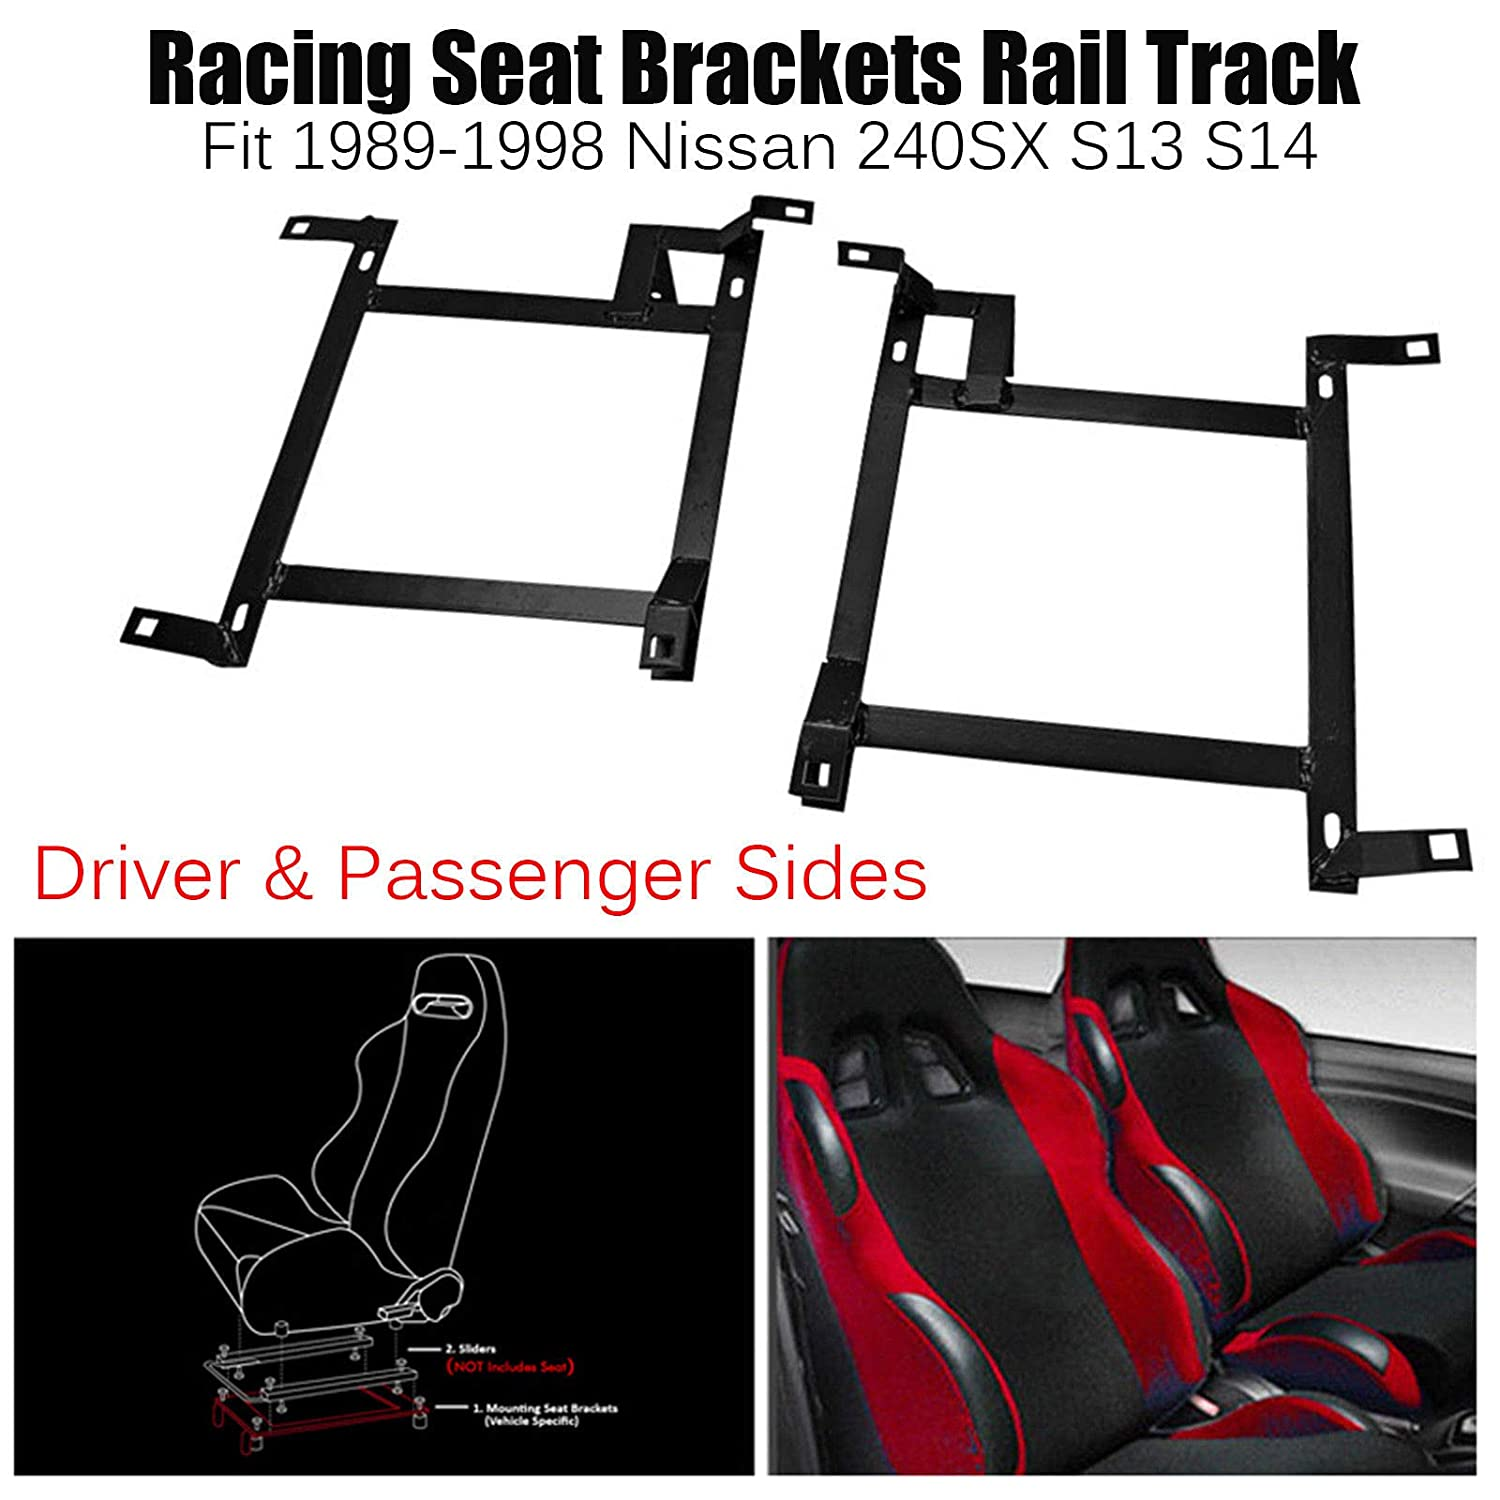 Driver & Passenger Sides Pair of Racing Seat Mounting Brackets Rail Track (Left & Right) for 1989-1998 Nissan 240SX S13 S14 blackhorseracing